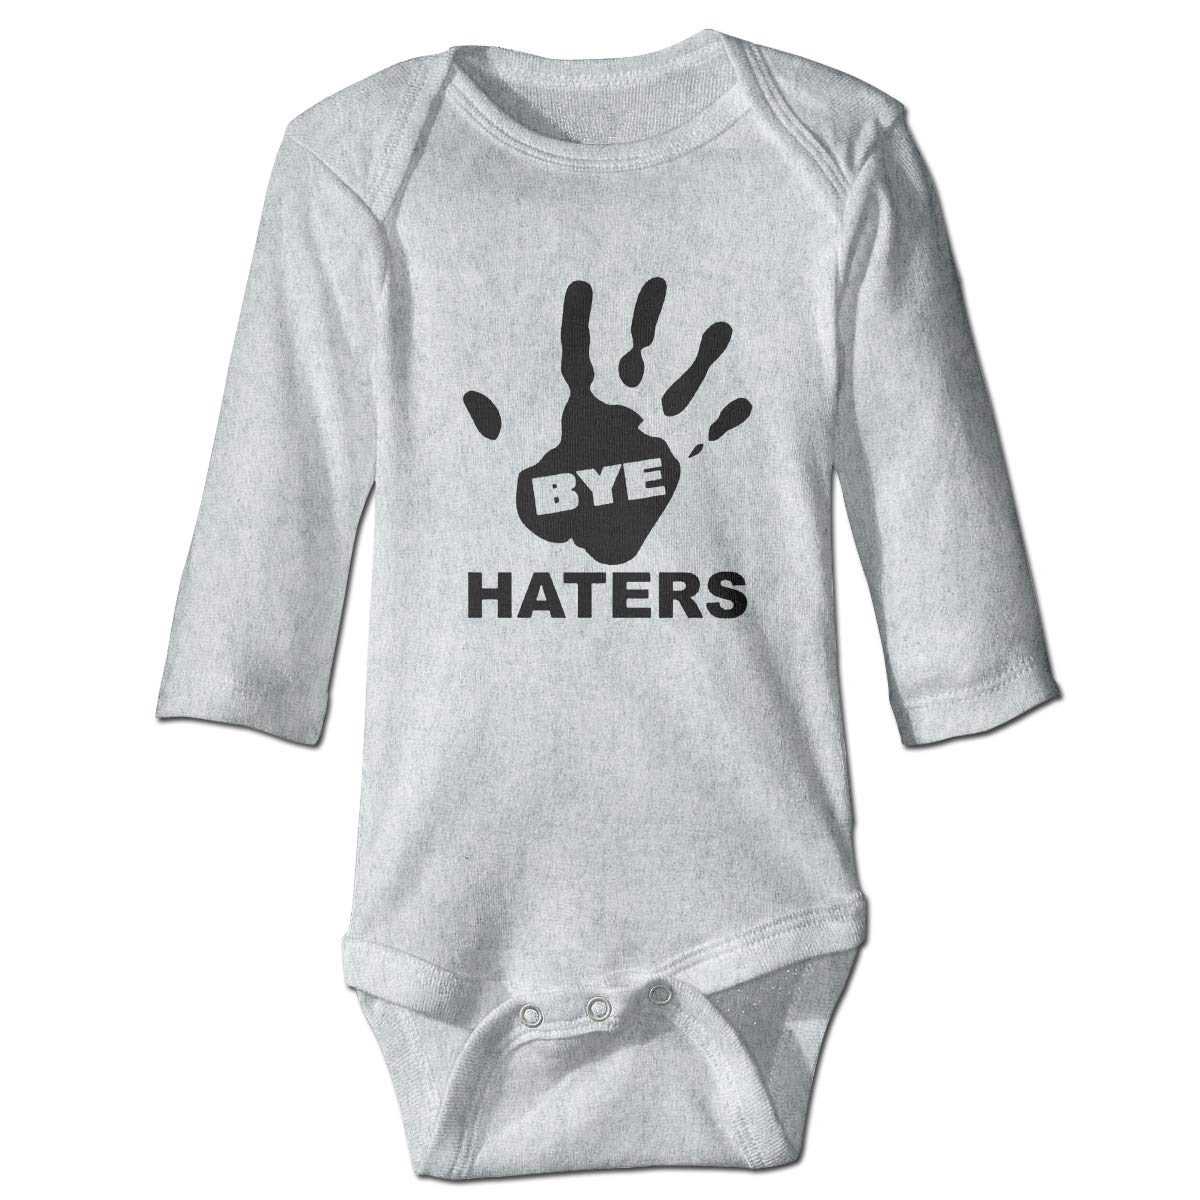 Dfenere Bye Haters Fashion Newborn Baby Long Sleeve Bodysuit Romper Infant Summer Clothing